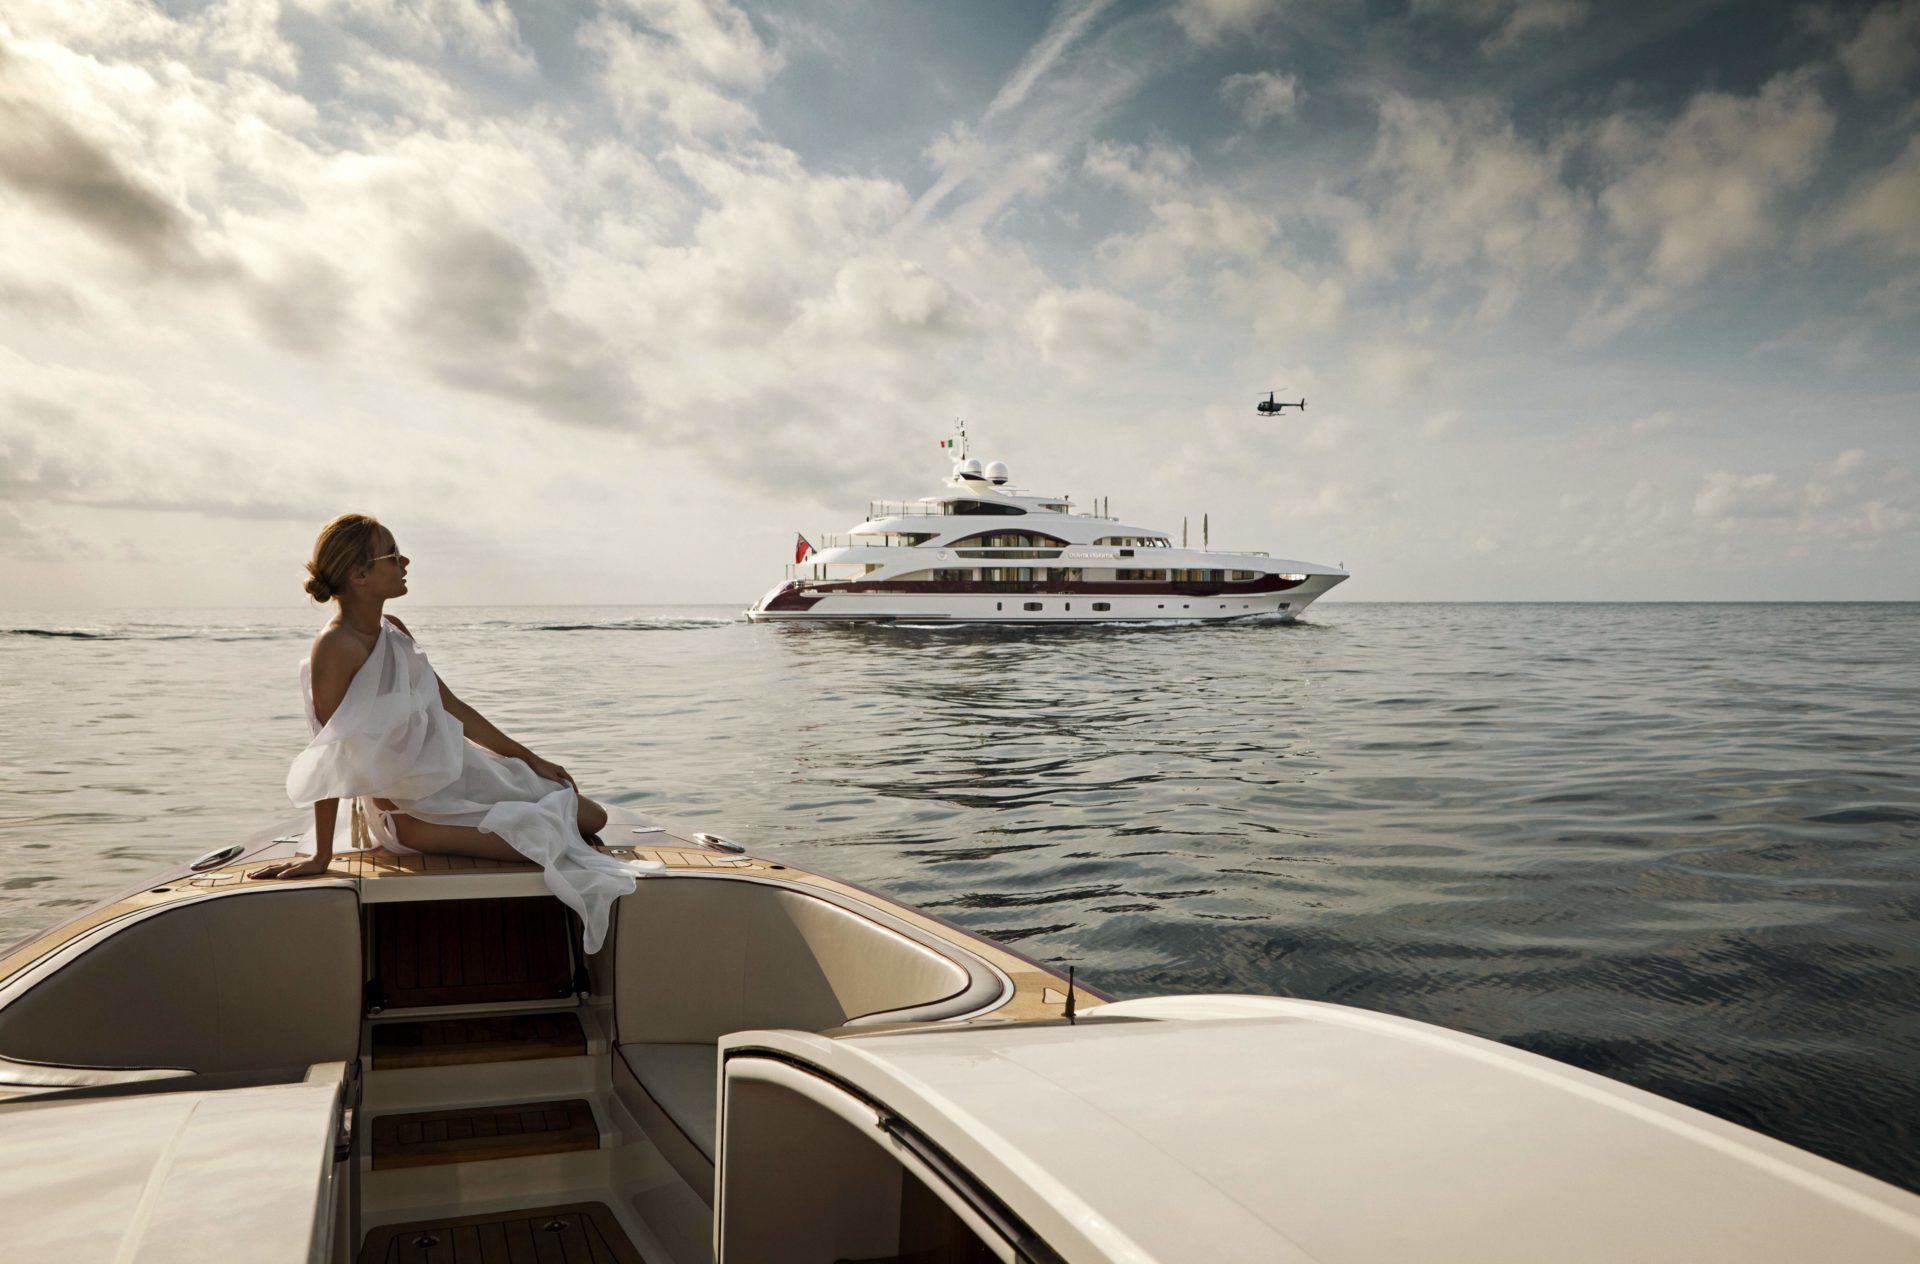 woman on a yacht luxury travel